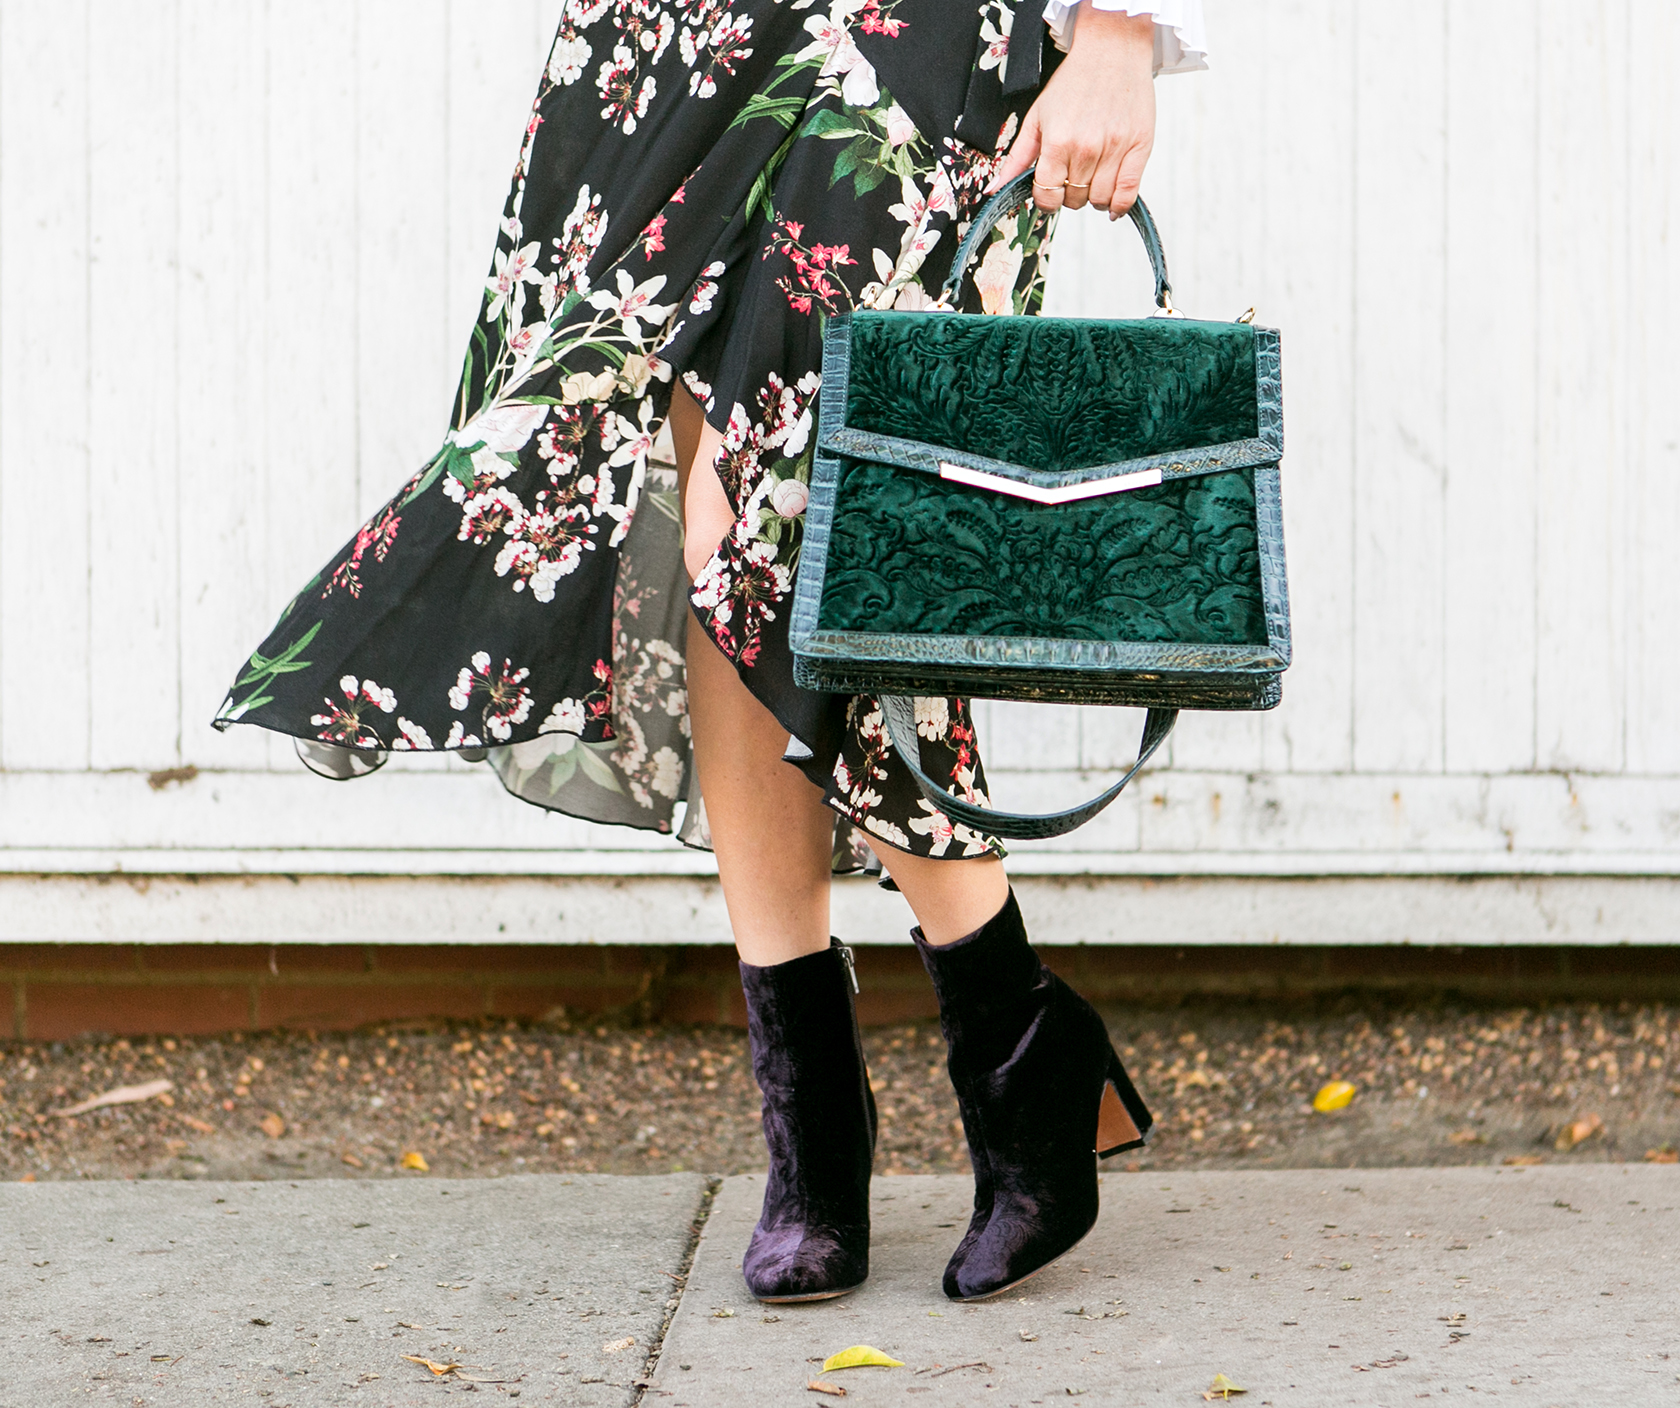 Sydne-Style-shows-the-best-velvet-accessories-for-fall-with-emerald-green-brahmin-bag.jpg